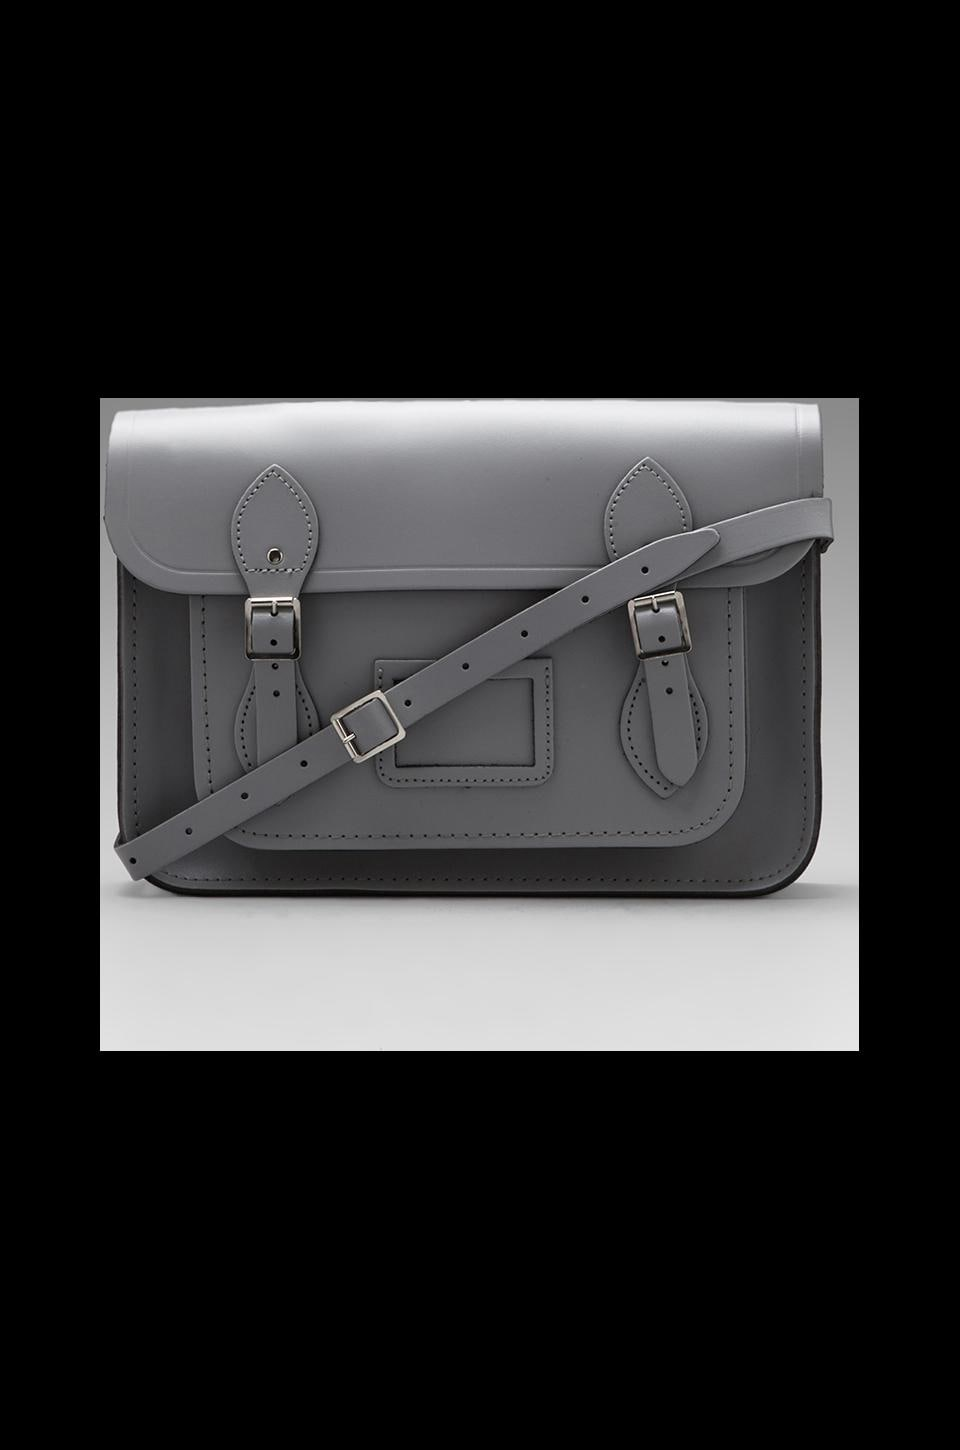 The Cambridge Satchel Company Core Collective 13'' Satchel in Grey